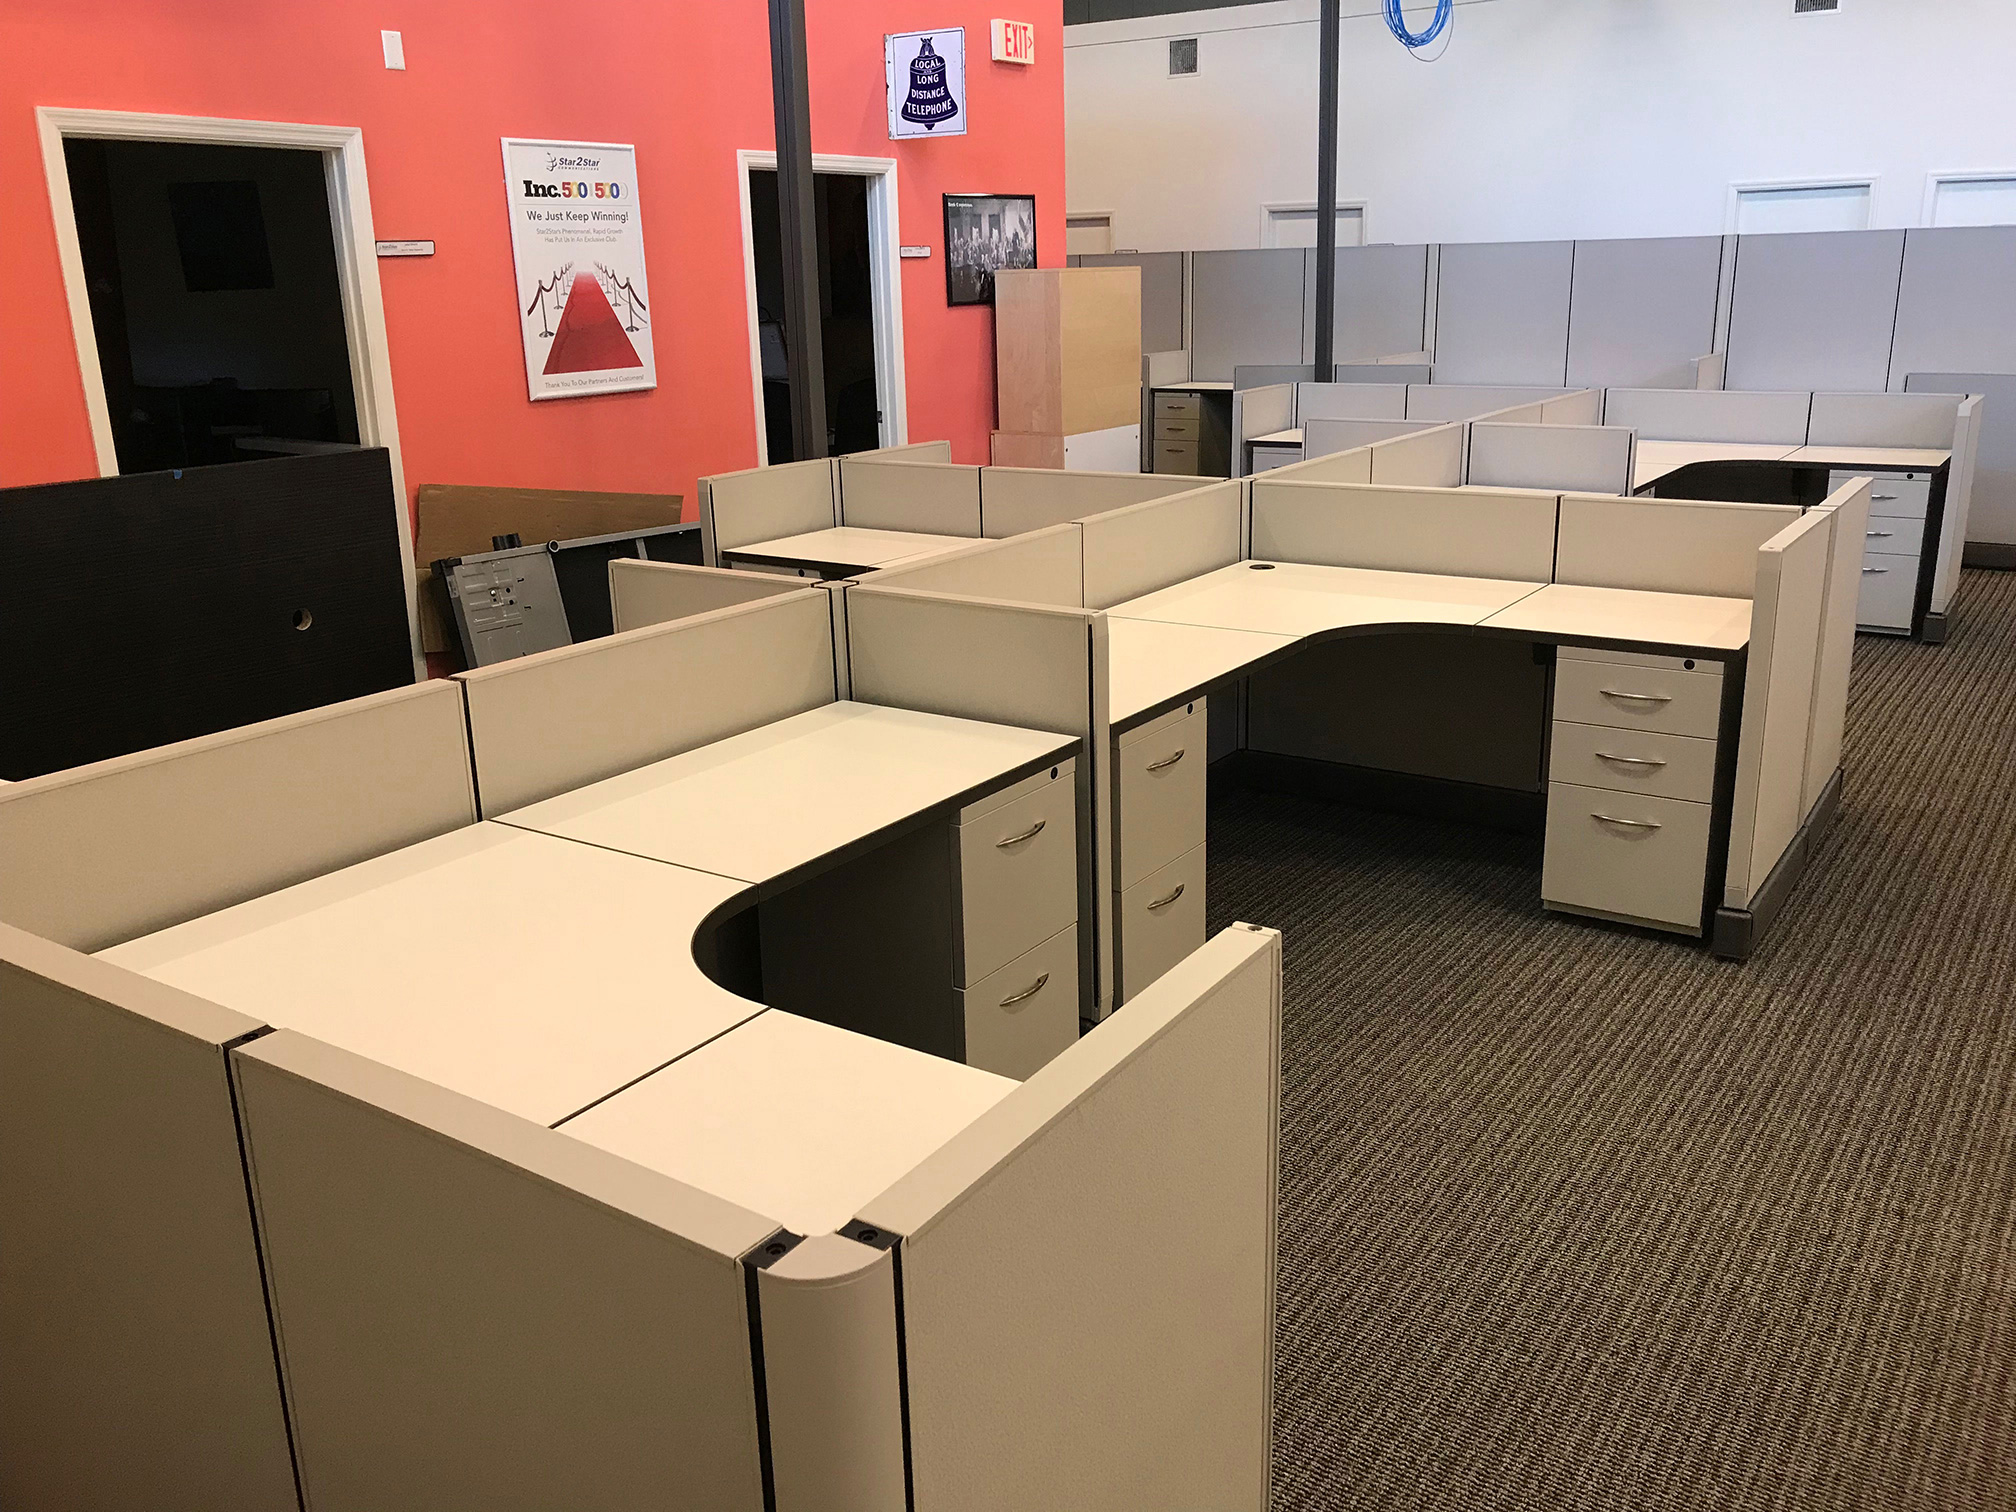 office-cubicles-for-sale-in-titusville-florida-2.jpg